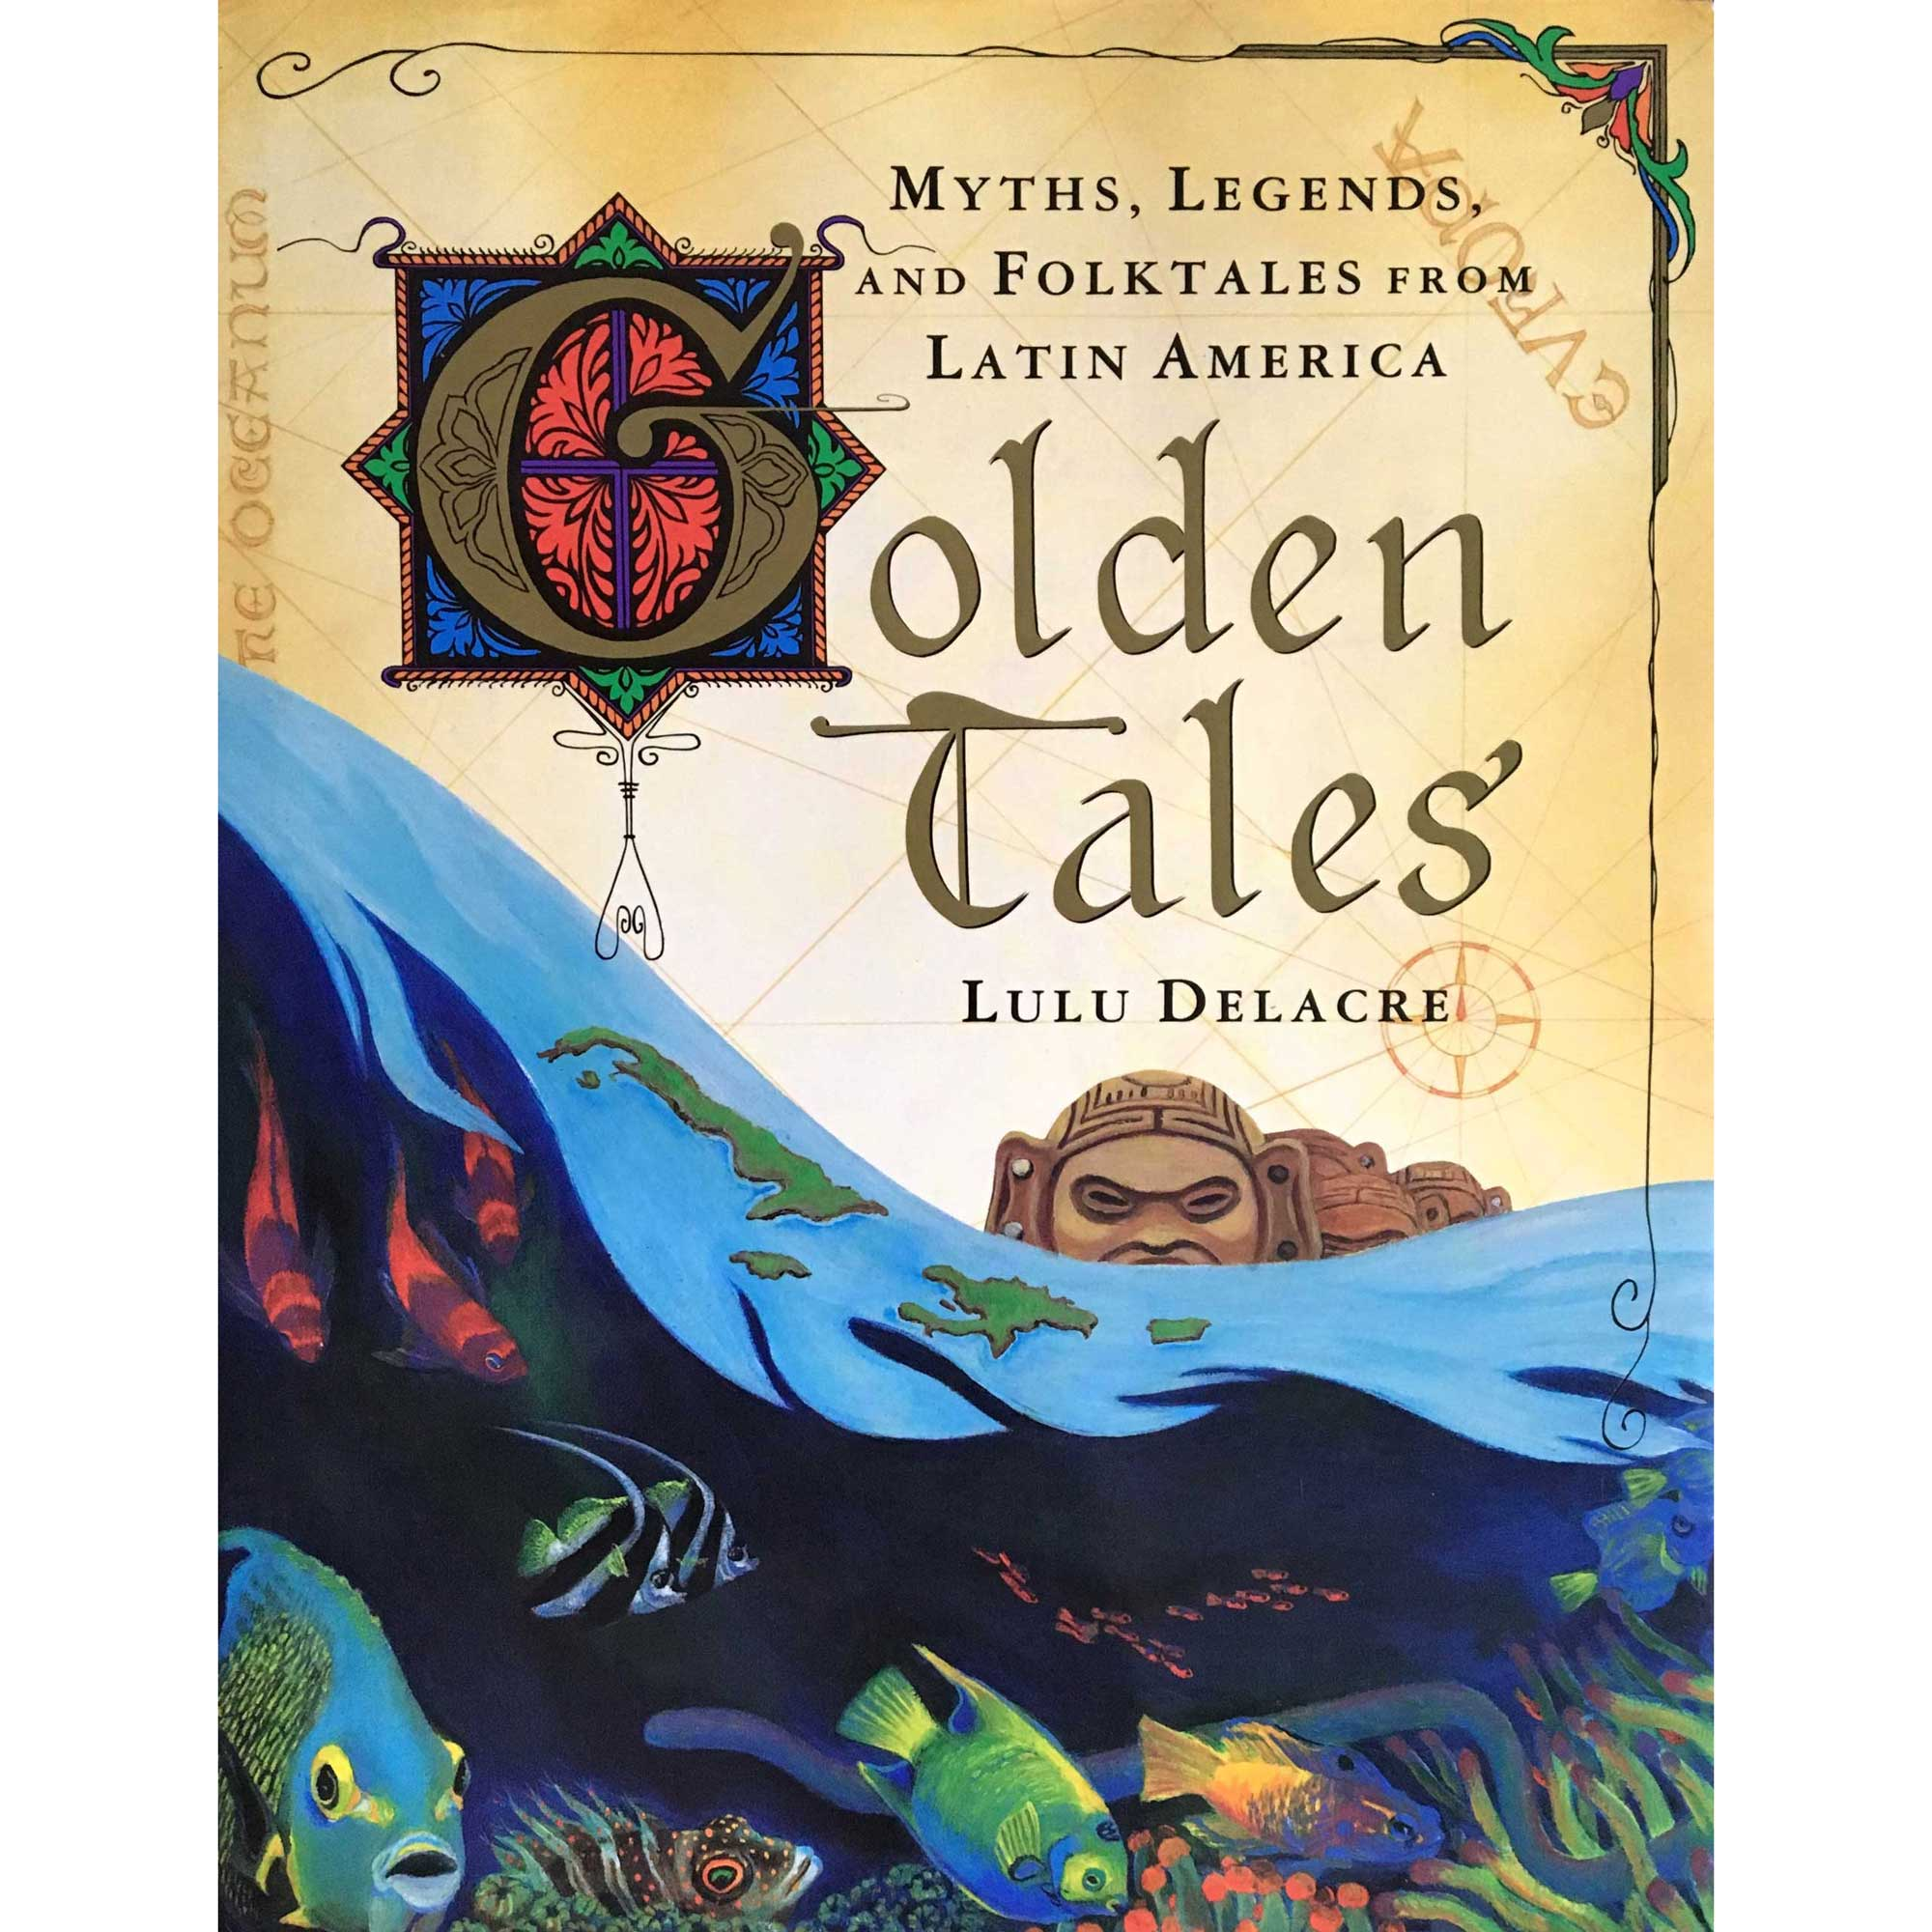 golden tales by lulu delacre